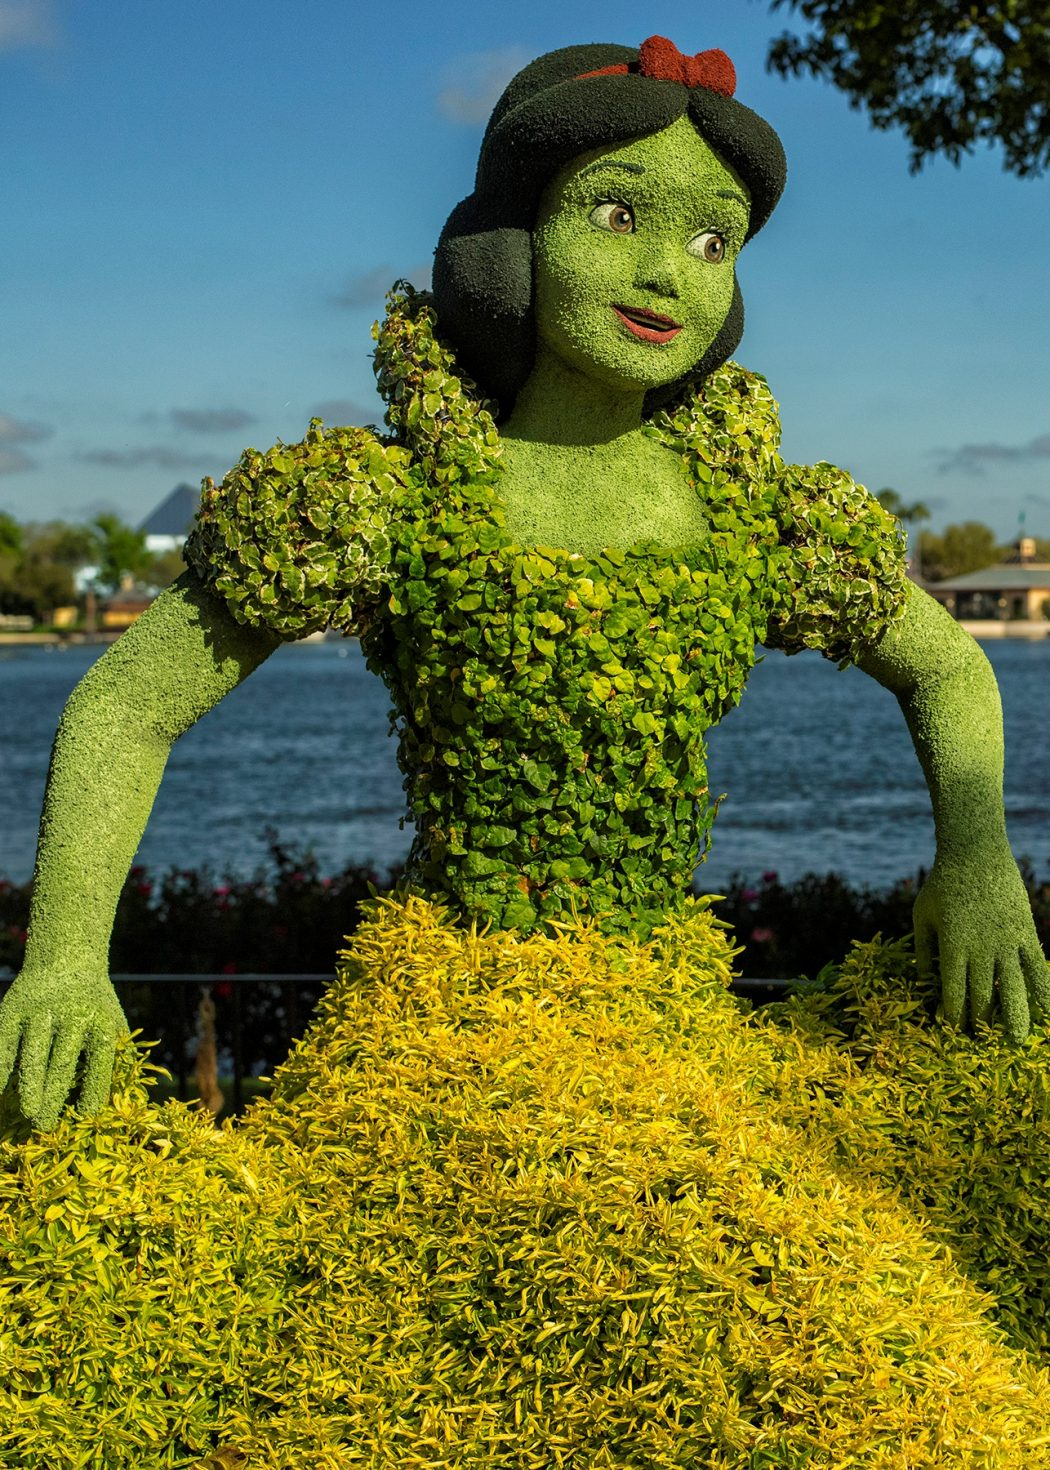 The Snow White topiary is a fan favorite at the Epcot International Flower and Garden Festival